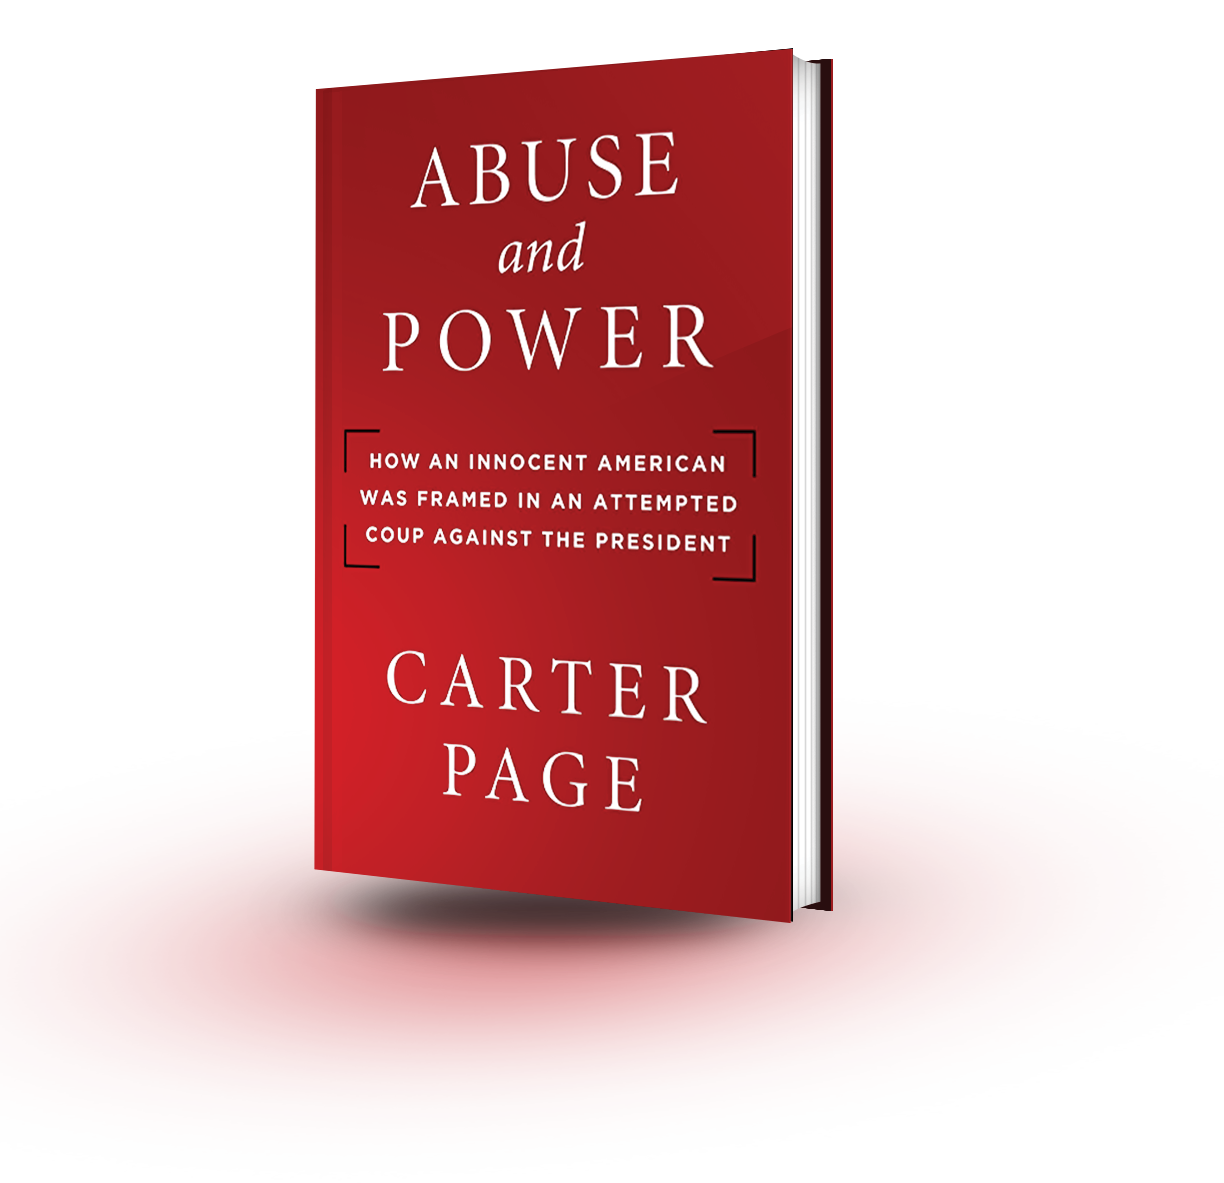 carter page, carter page book, abuse and power